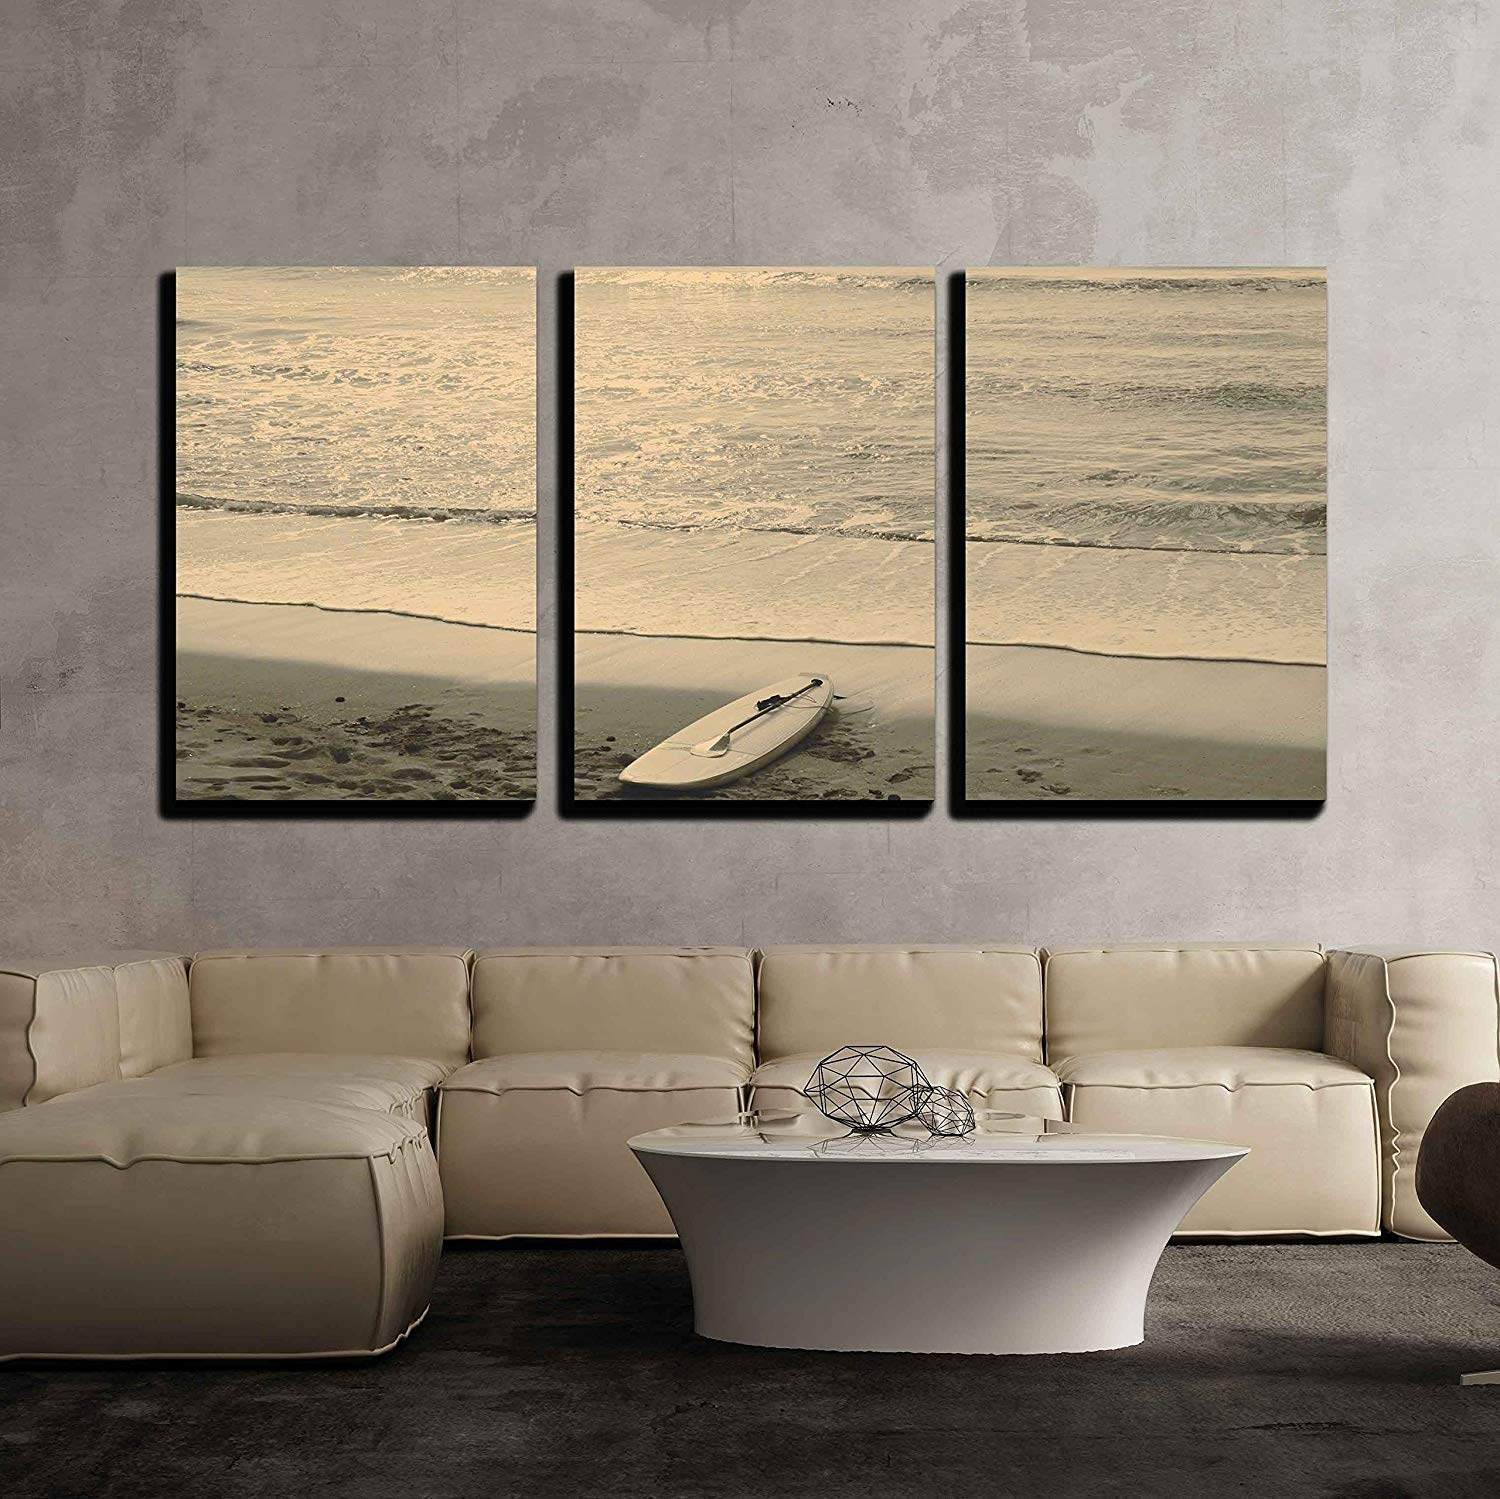 3 Piece Canvas Wall Art - Beach and Surf Board - Mallorca - Modern Home Art Stretched and Framed Ready to Hang - 24